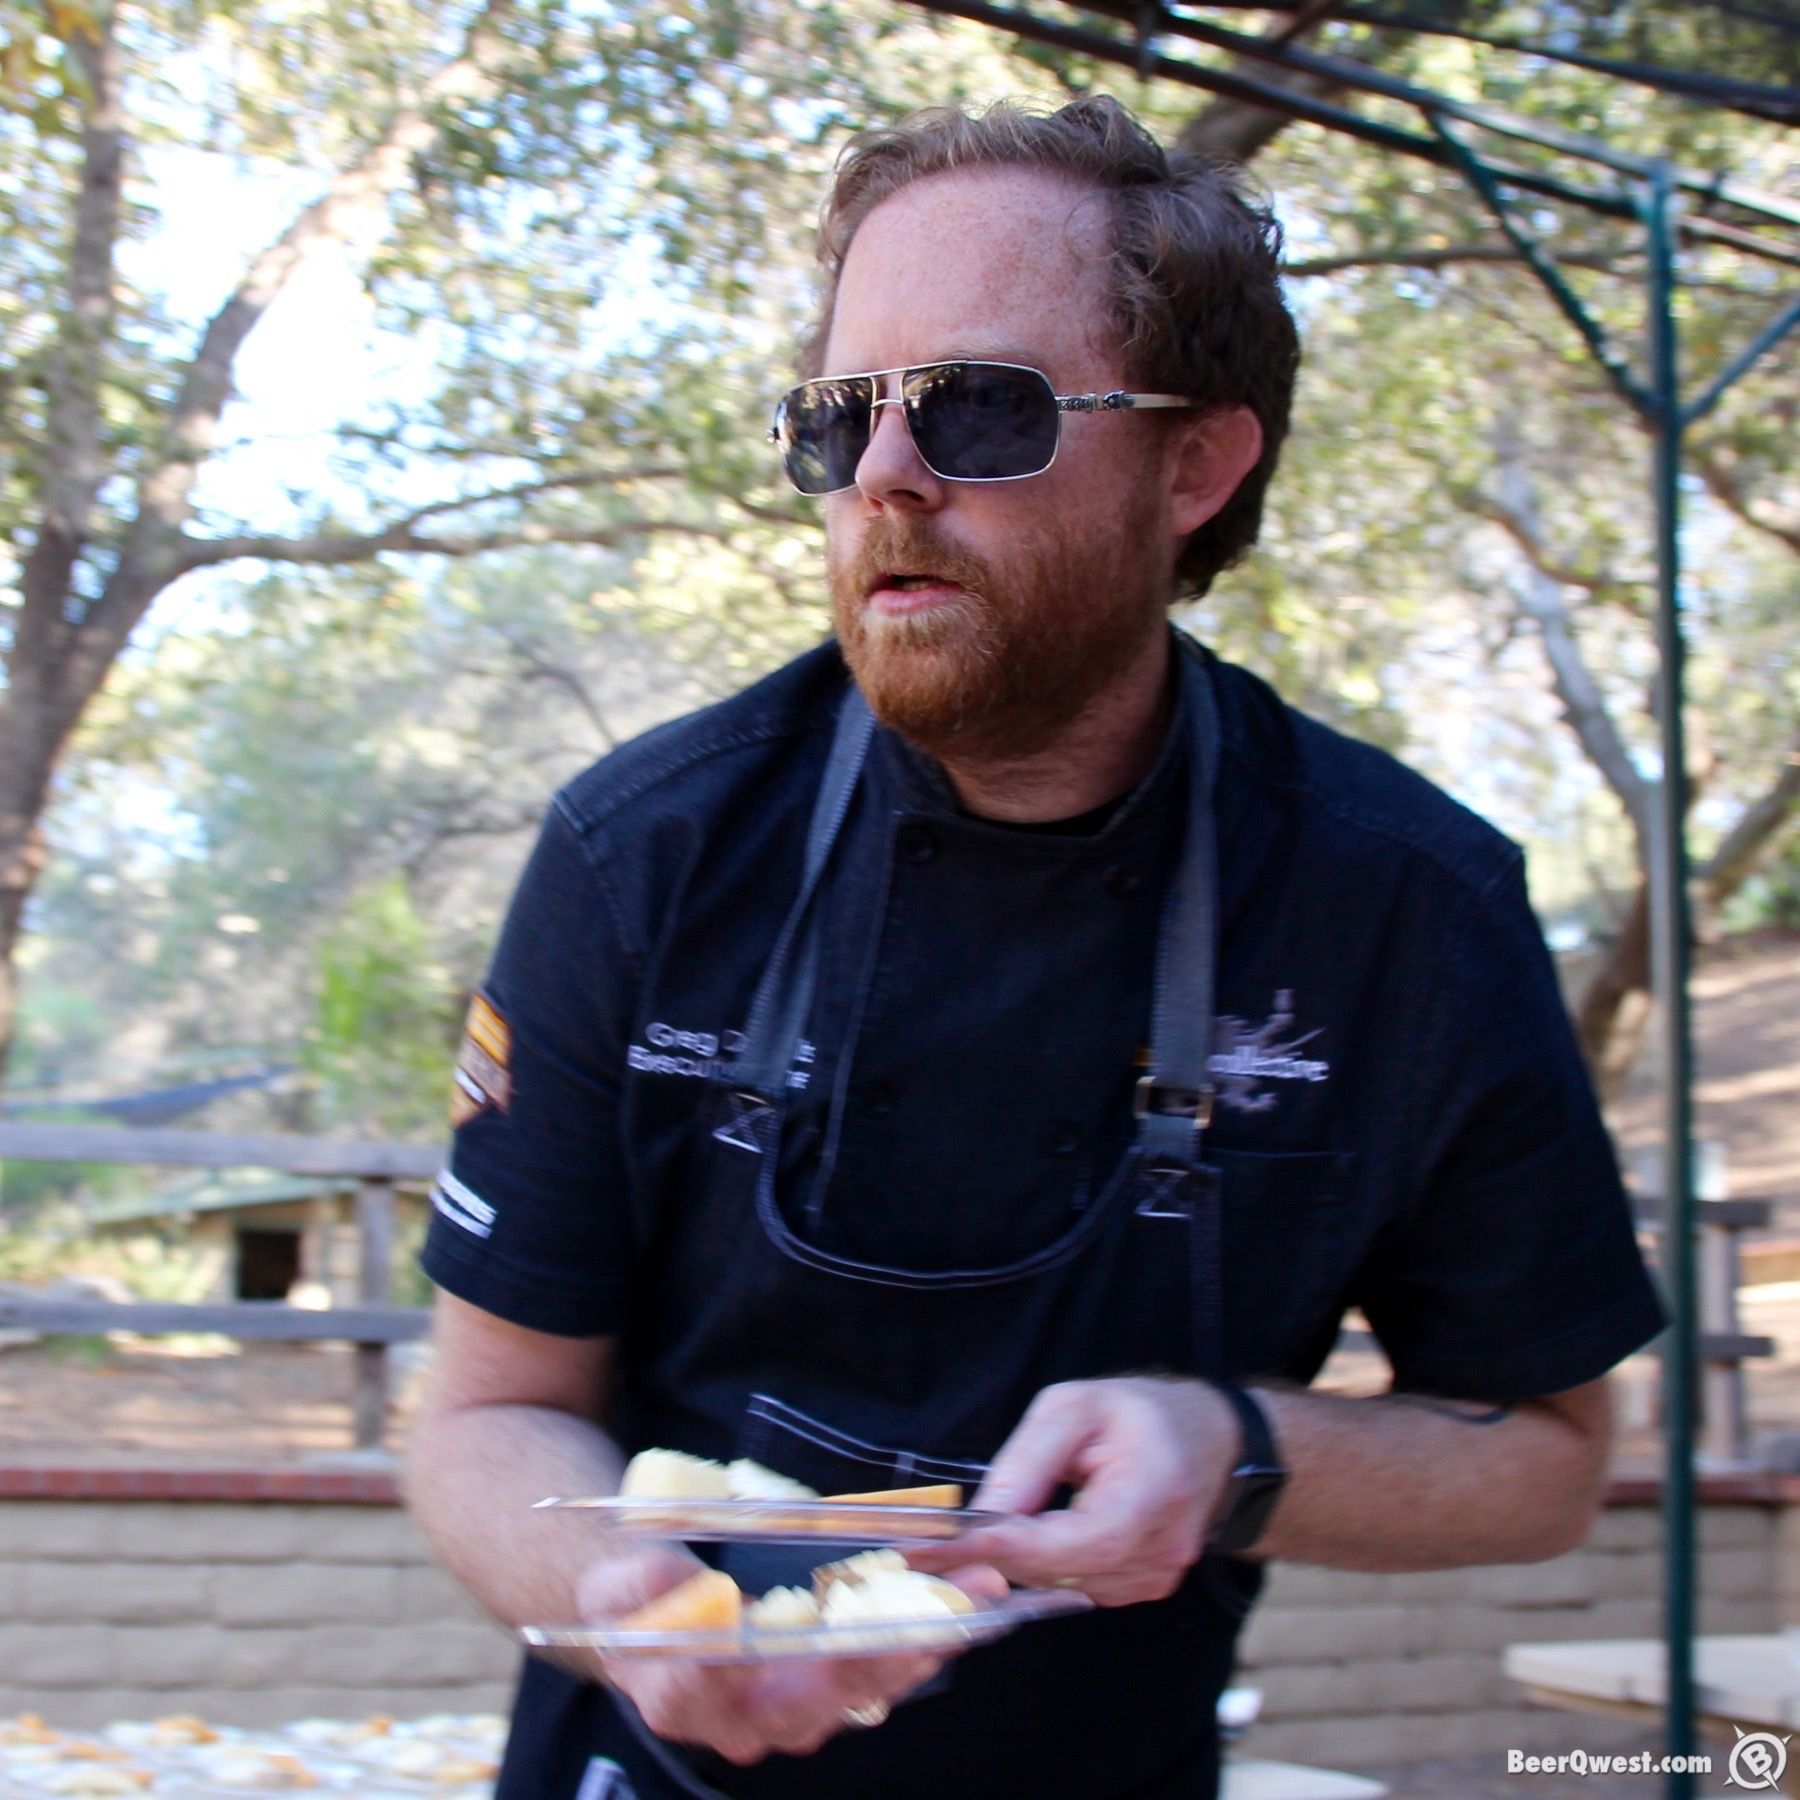 Greg Daniels, Haven Gastropub serving up beer and cheese pairings.